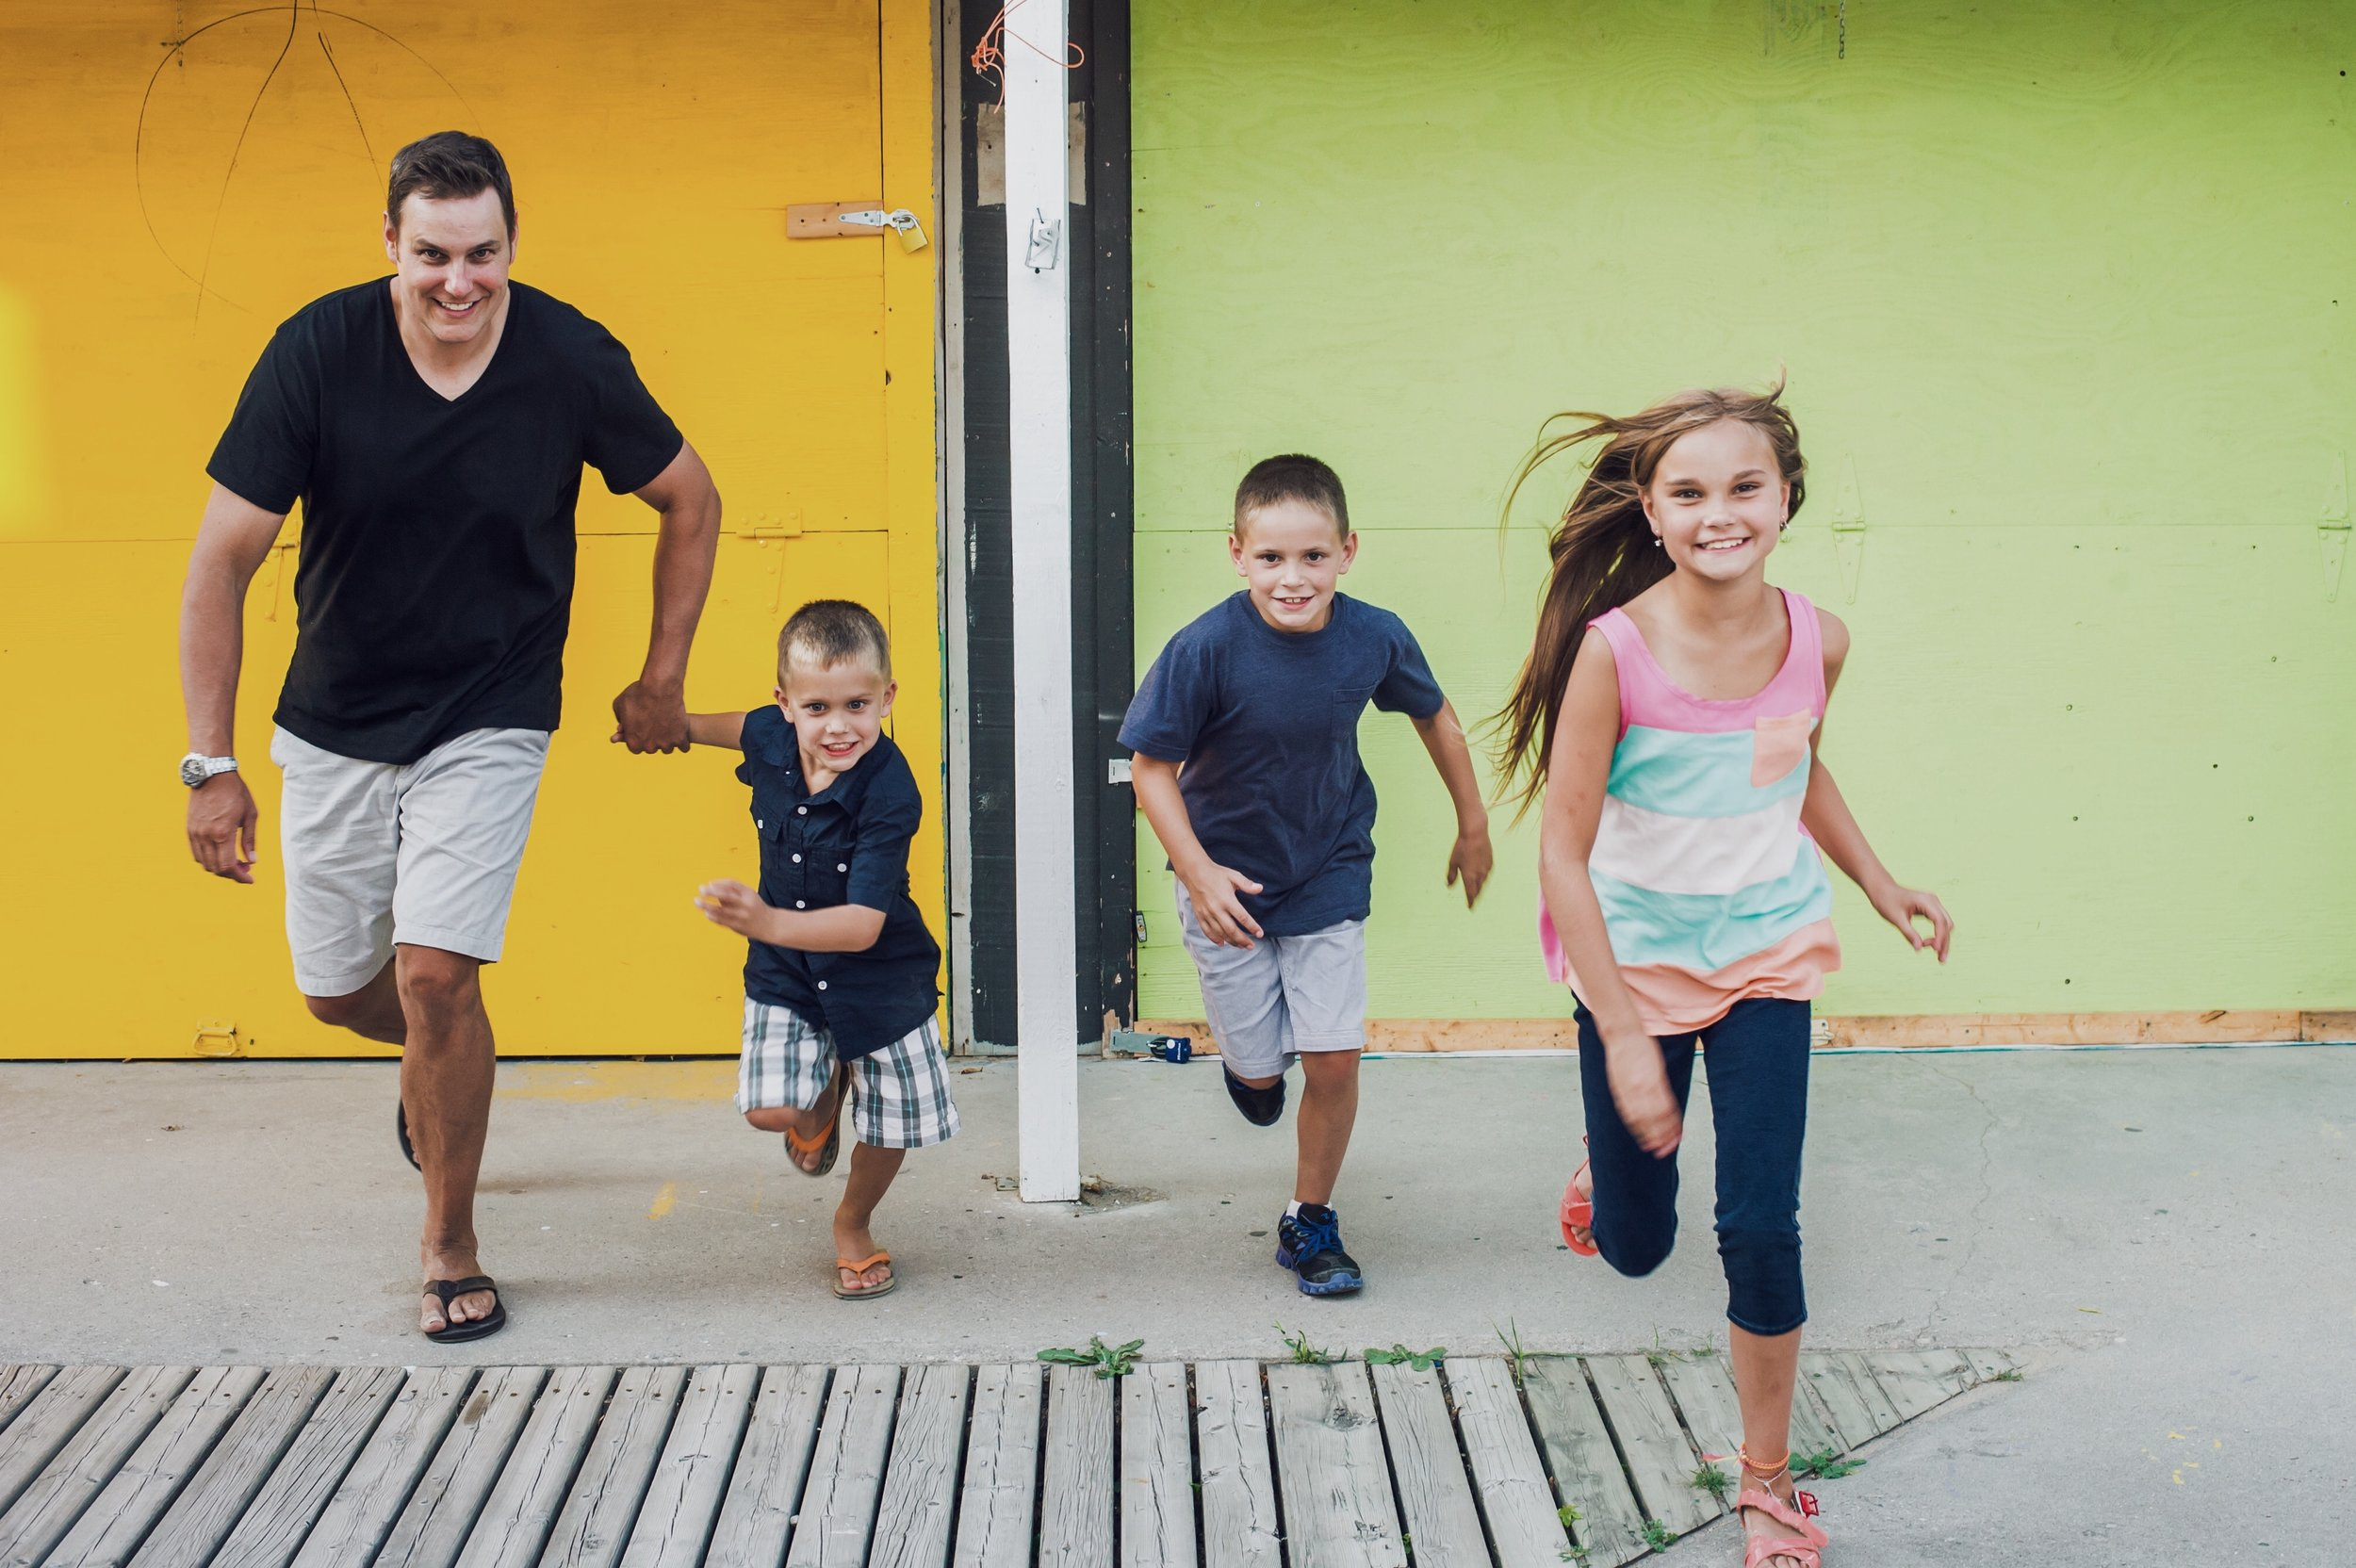 Dating A Man With Kids - Advice - 16 Things You Need To Know